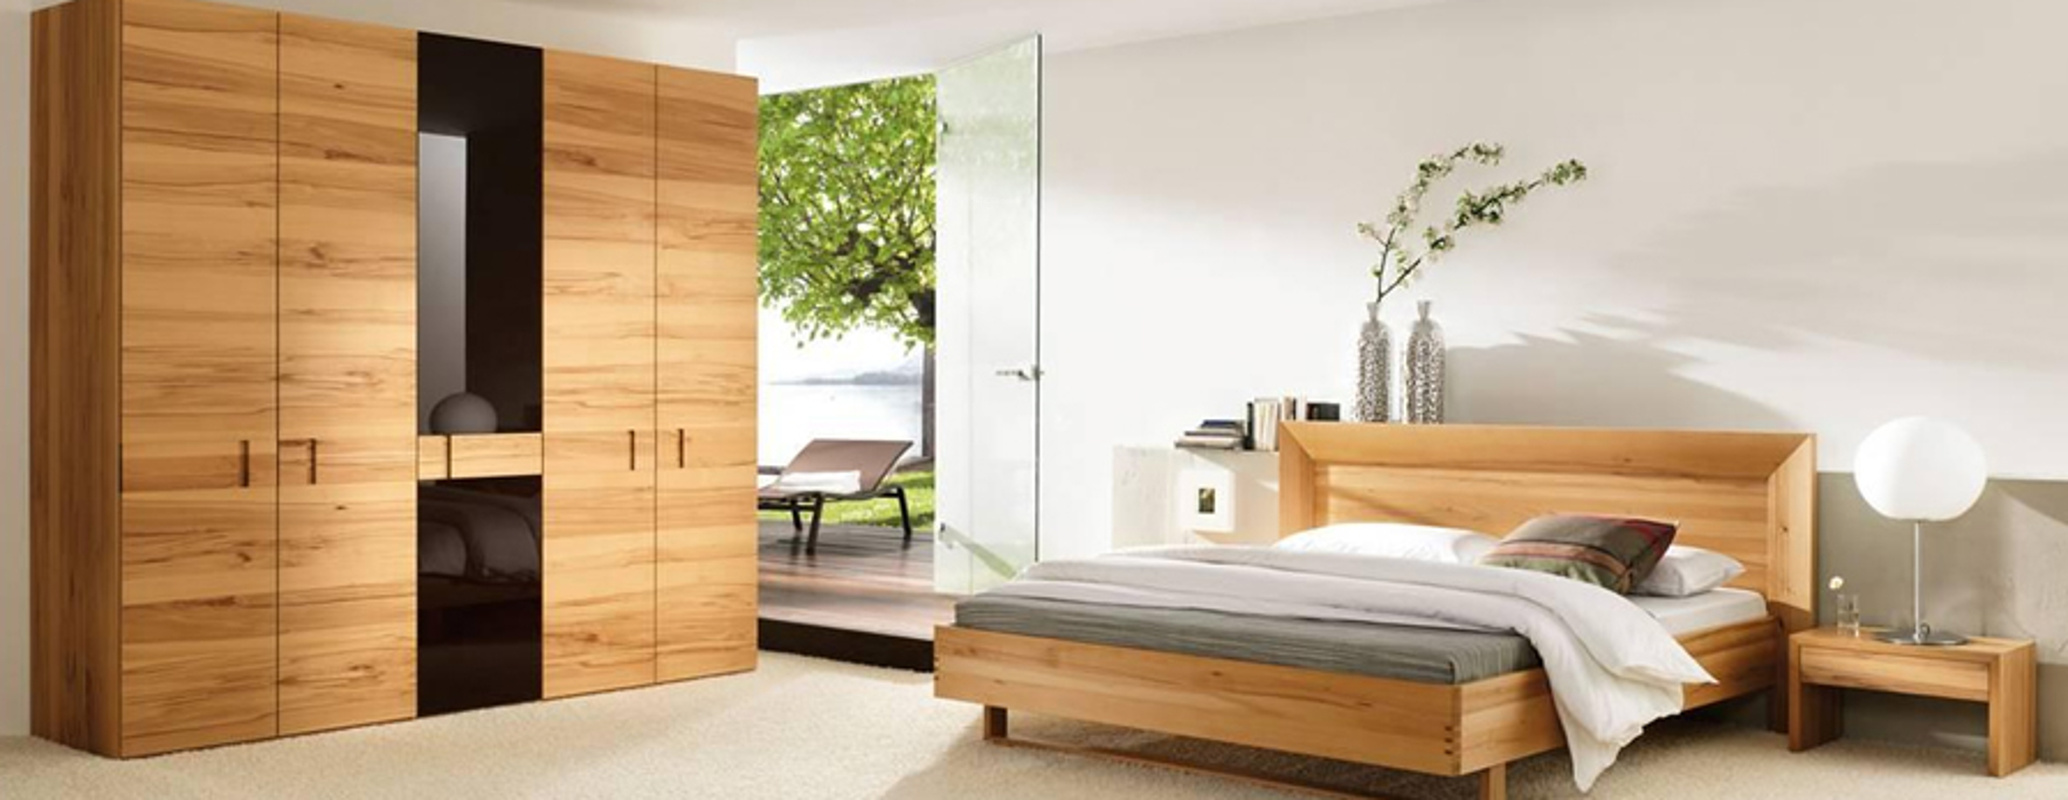 Fame fame heights in asilmetta visakhapatnam price for Teak wood doors in visakhapatnam